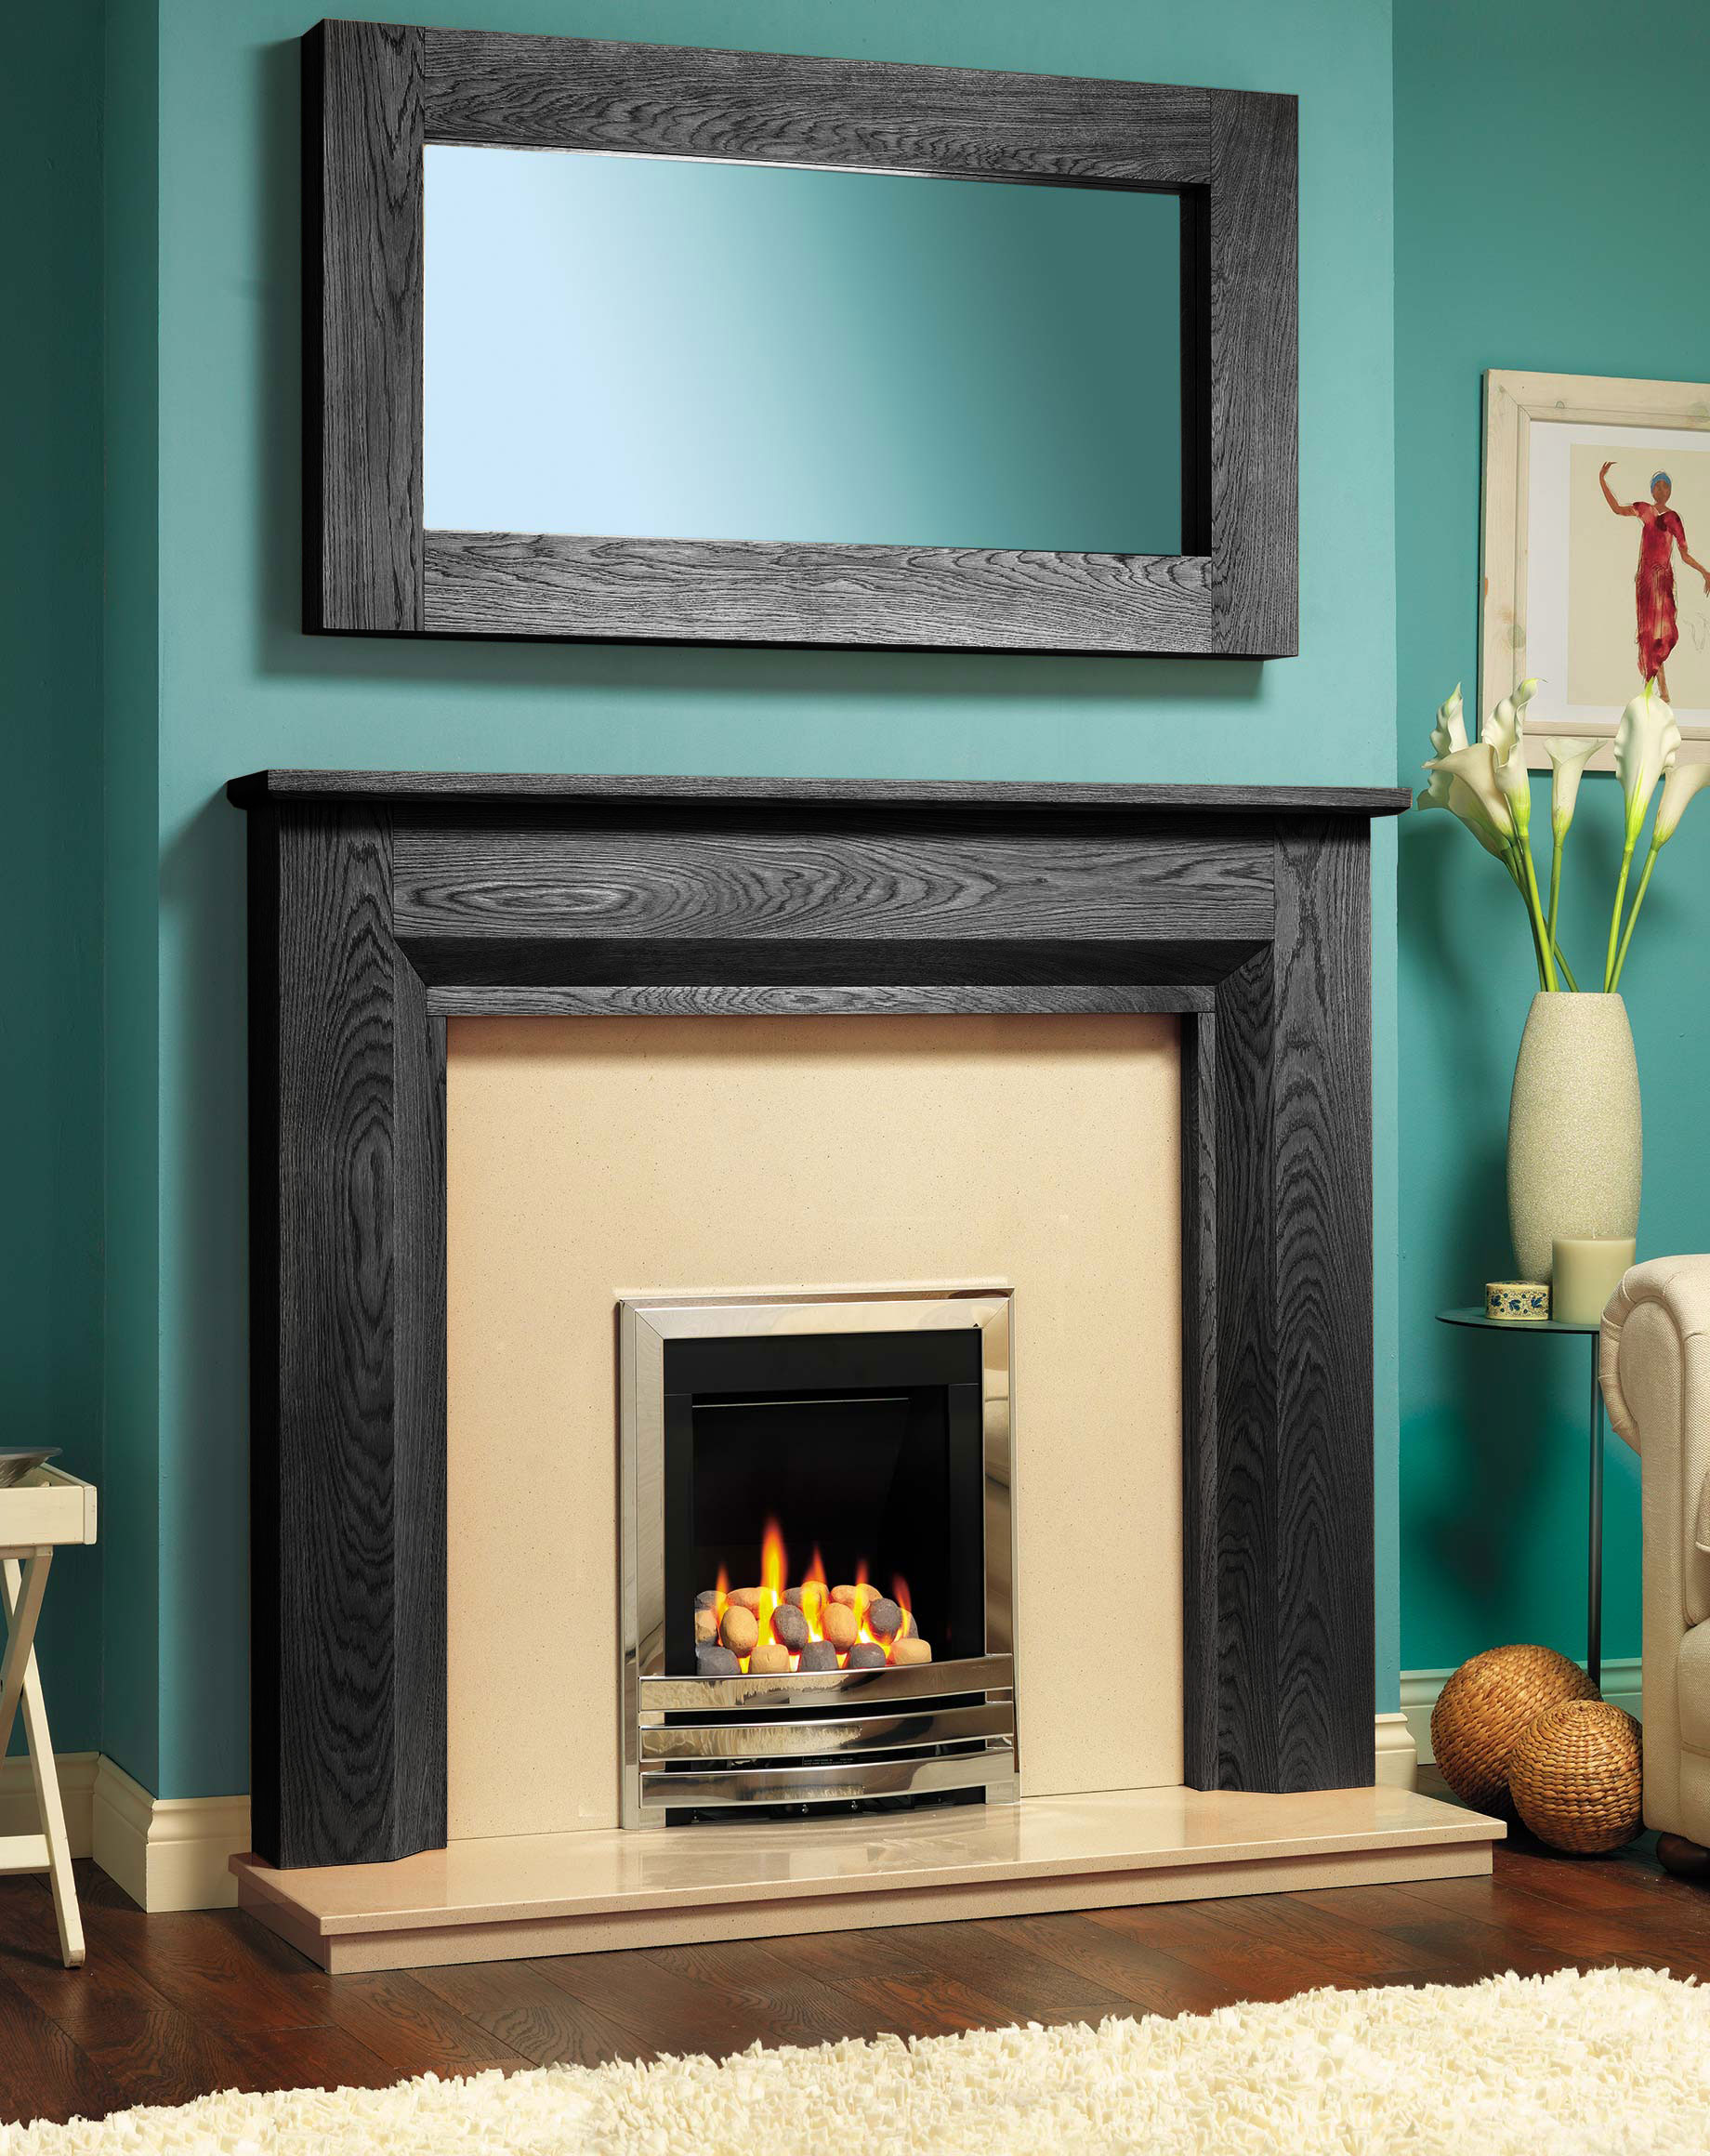 cleveland fire surround in solid oak or real wood veneer fires